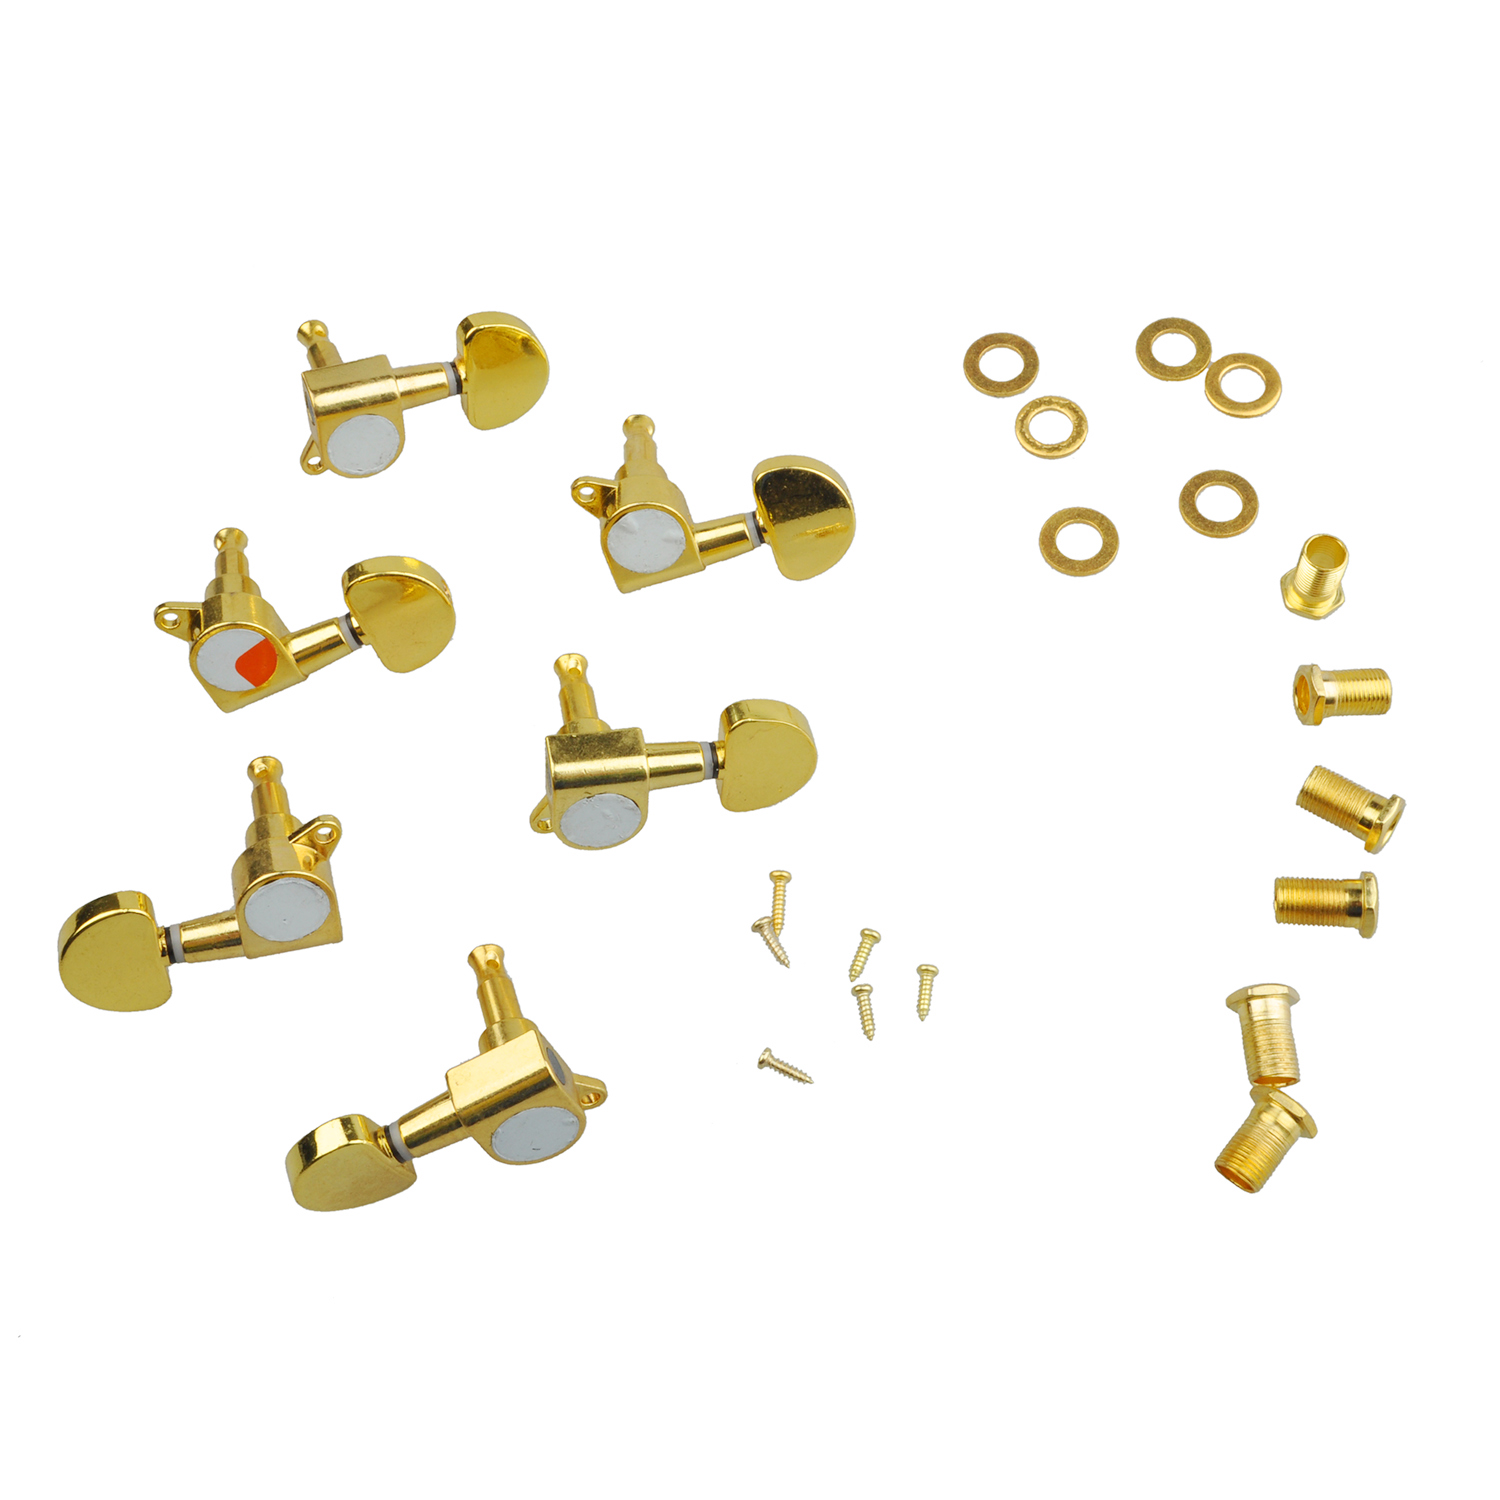 24 Pairs Sealed Guitar String Tuning Pegs Tuners Machine Heads 3L + 3R Gold / Steel and Zinc Alloy Gold Guitar Heads